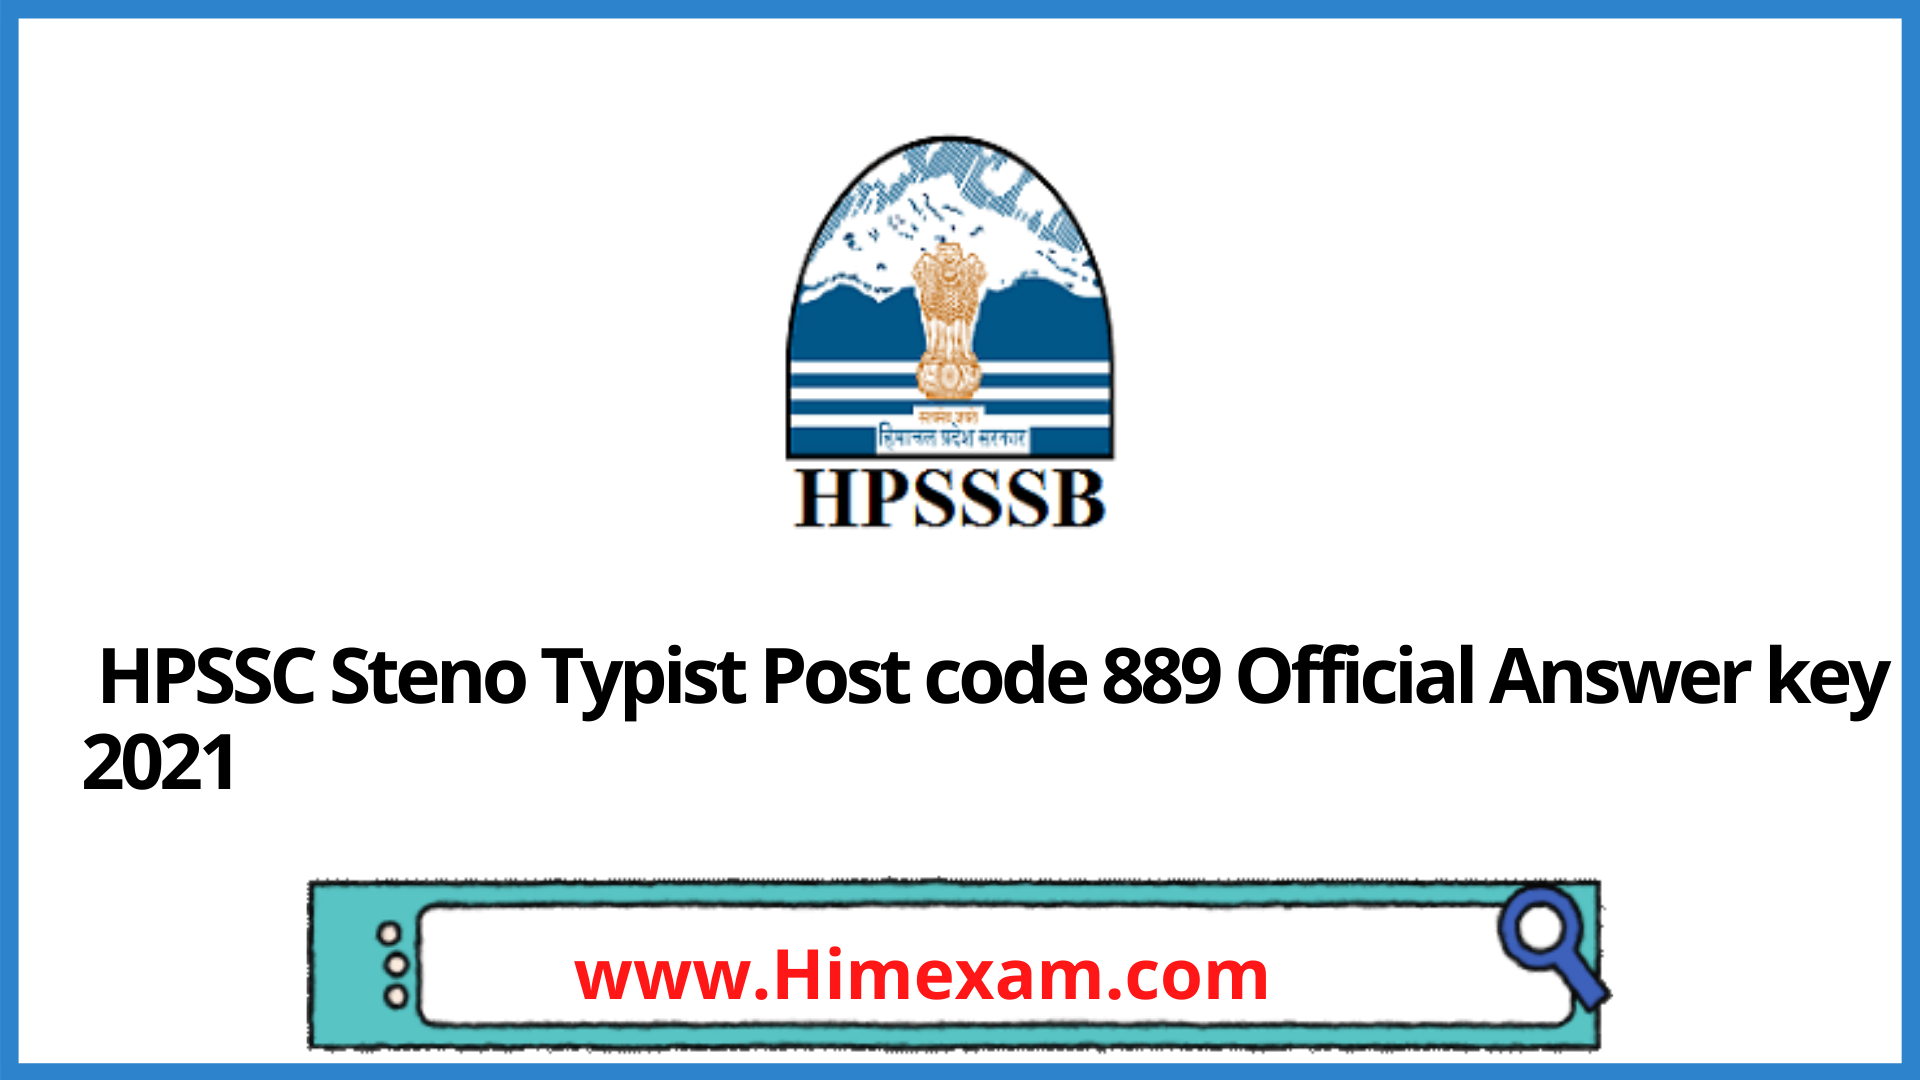 HPSSC Steno Typist Post code 889 Official Answer key 2021